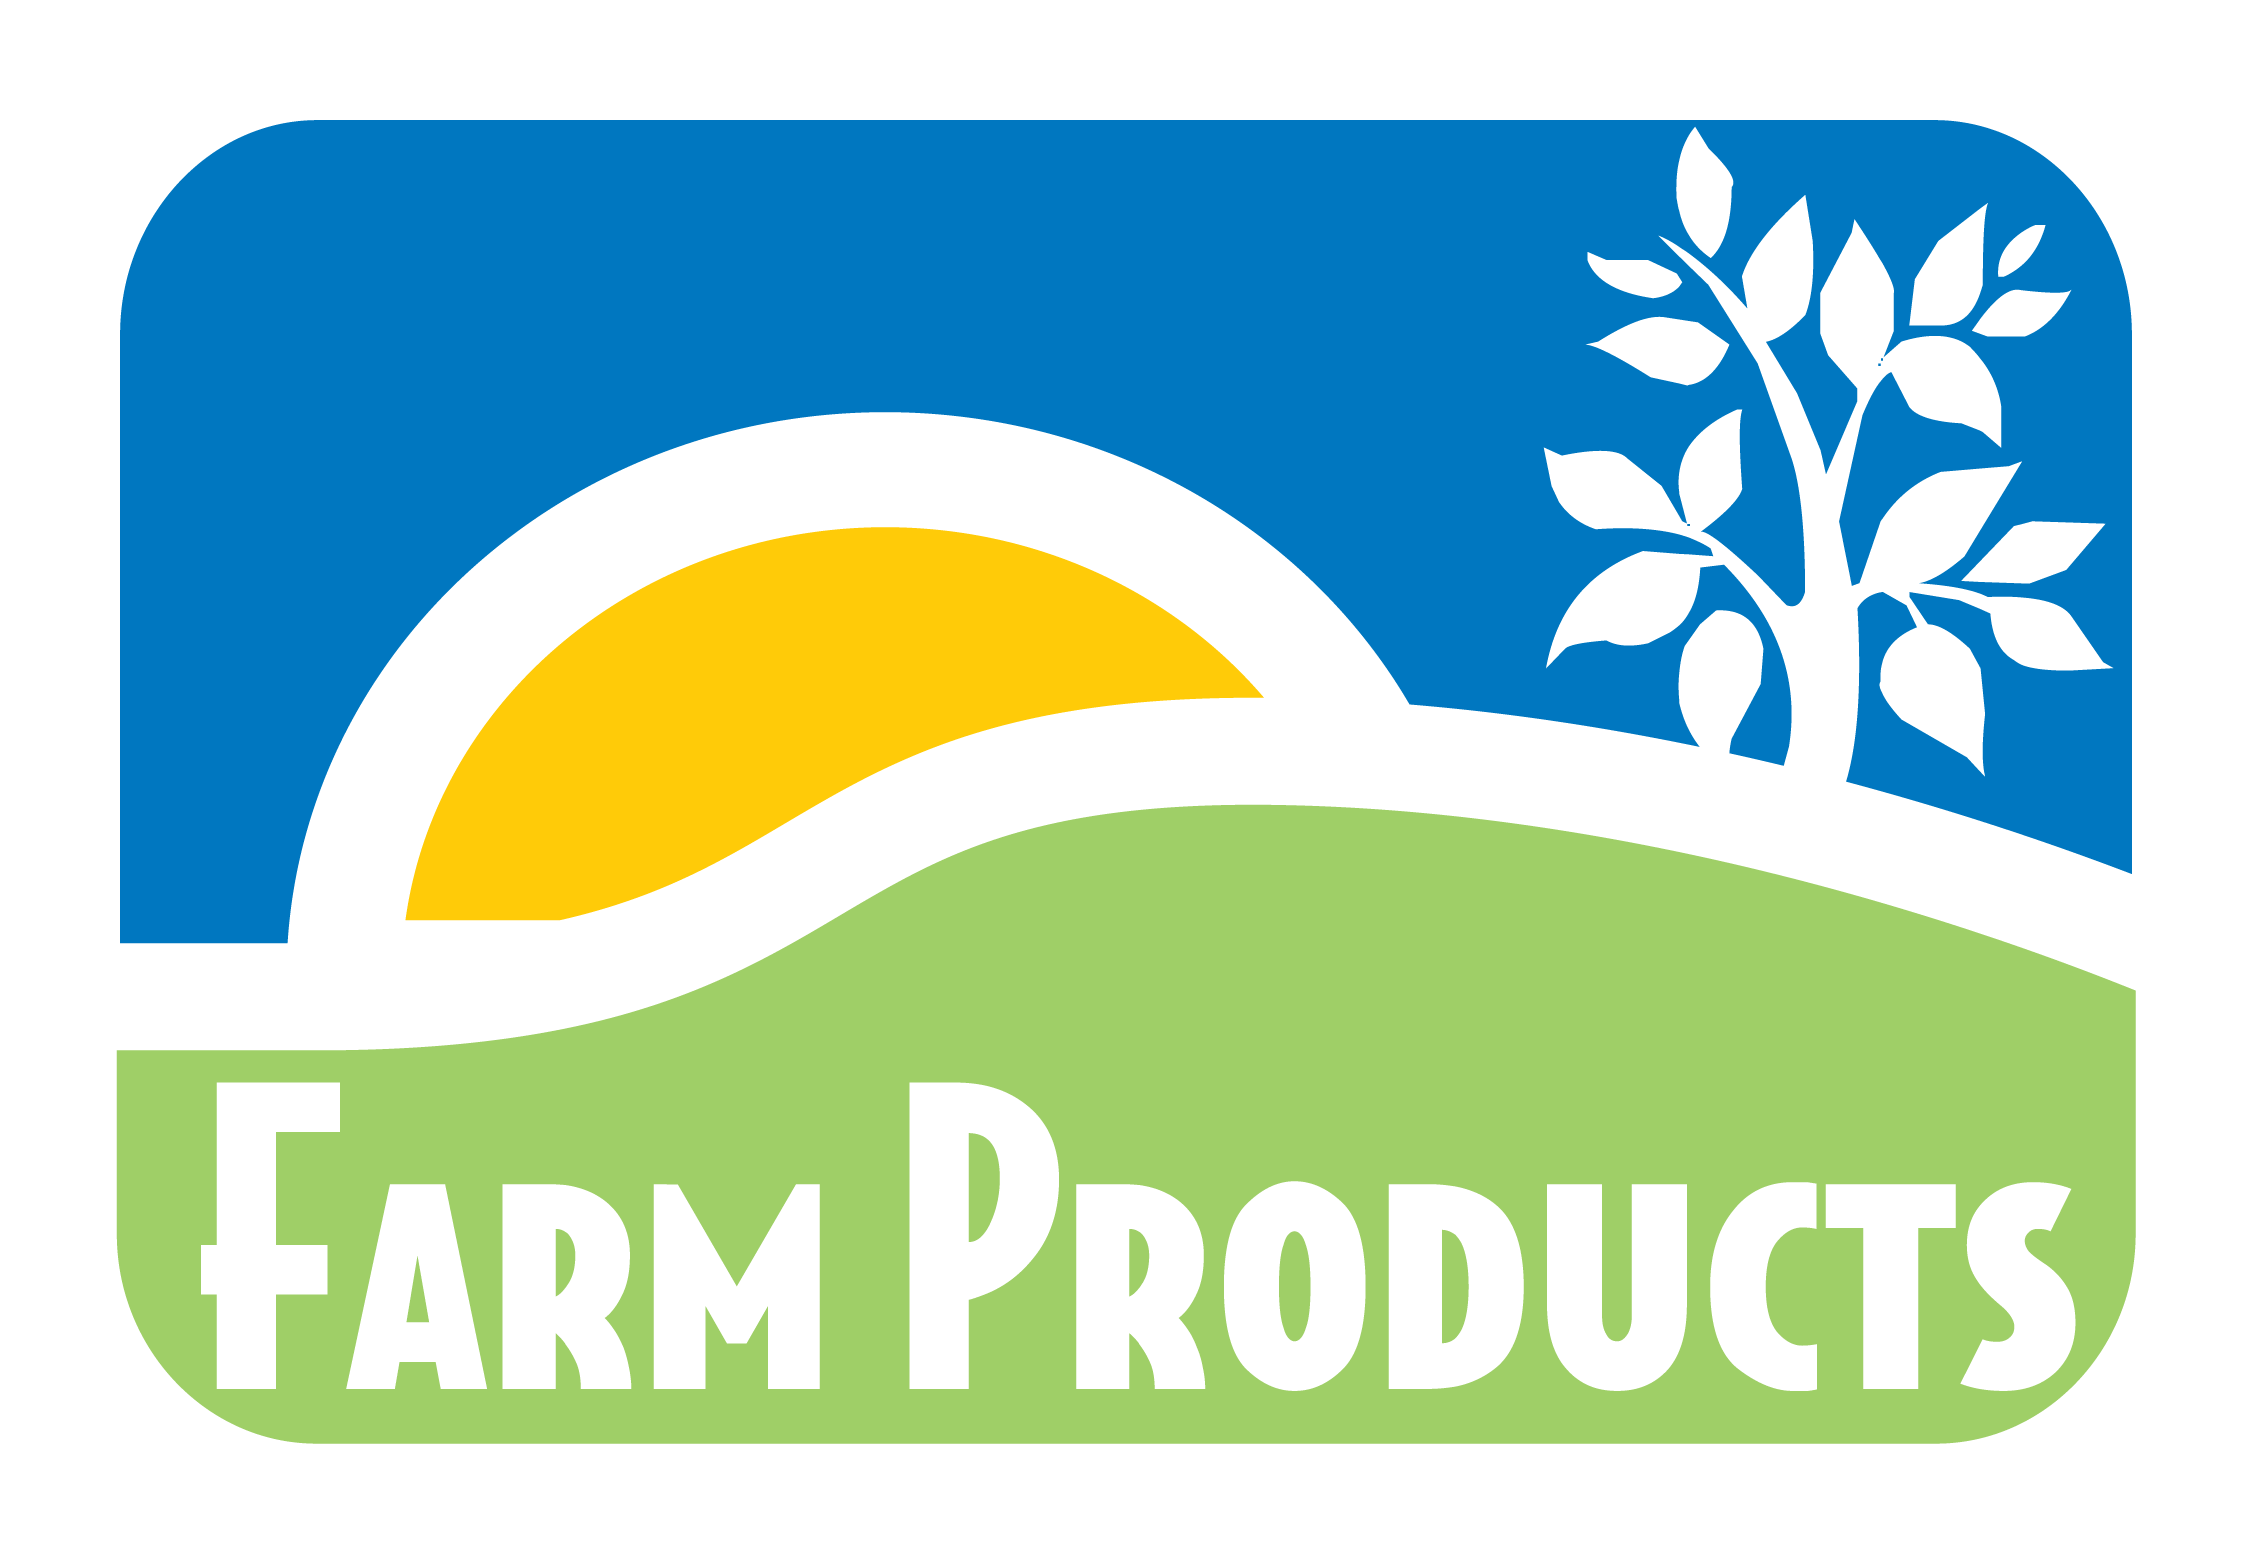 Farm Products S.R.L